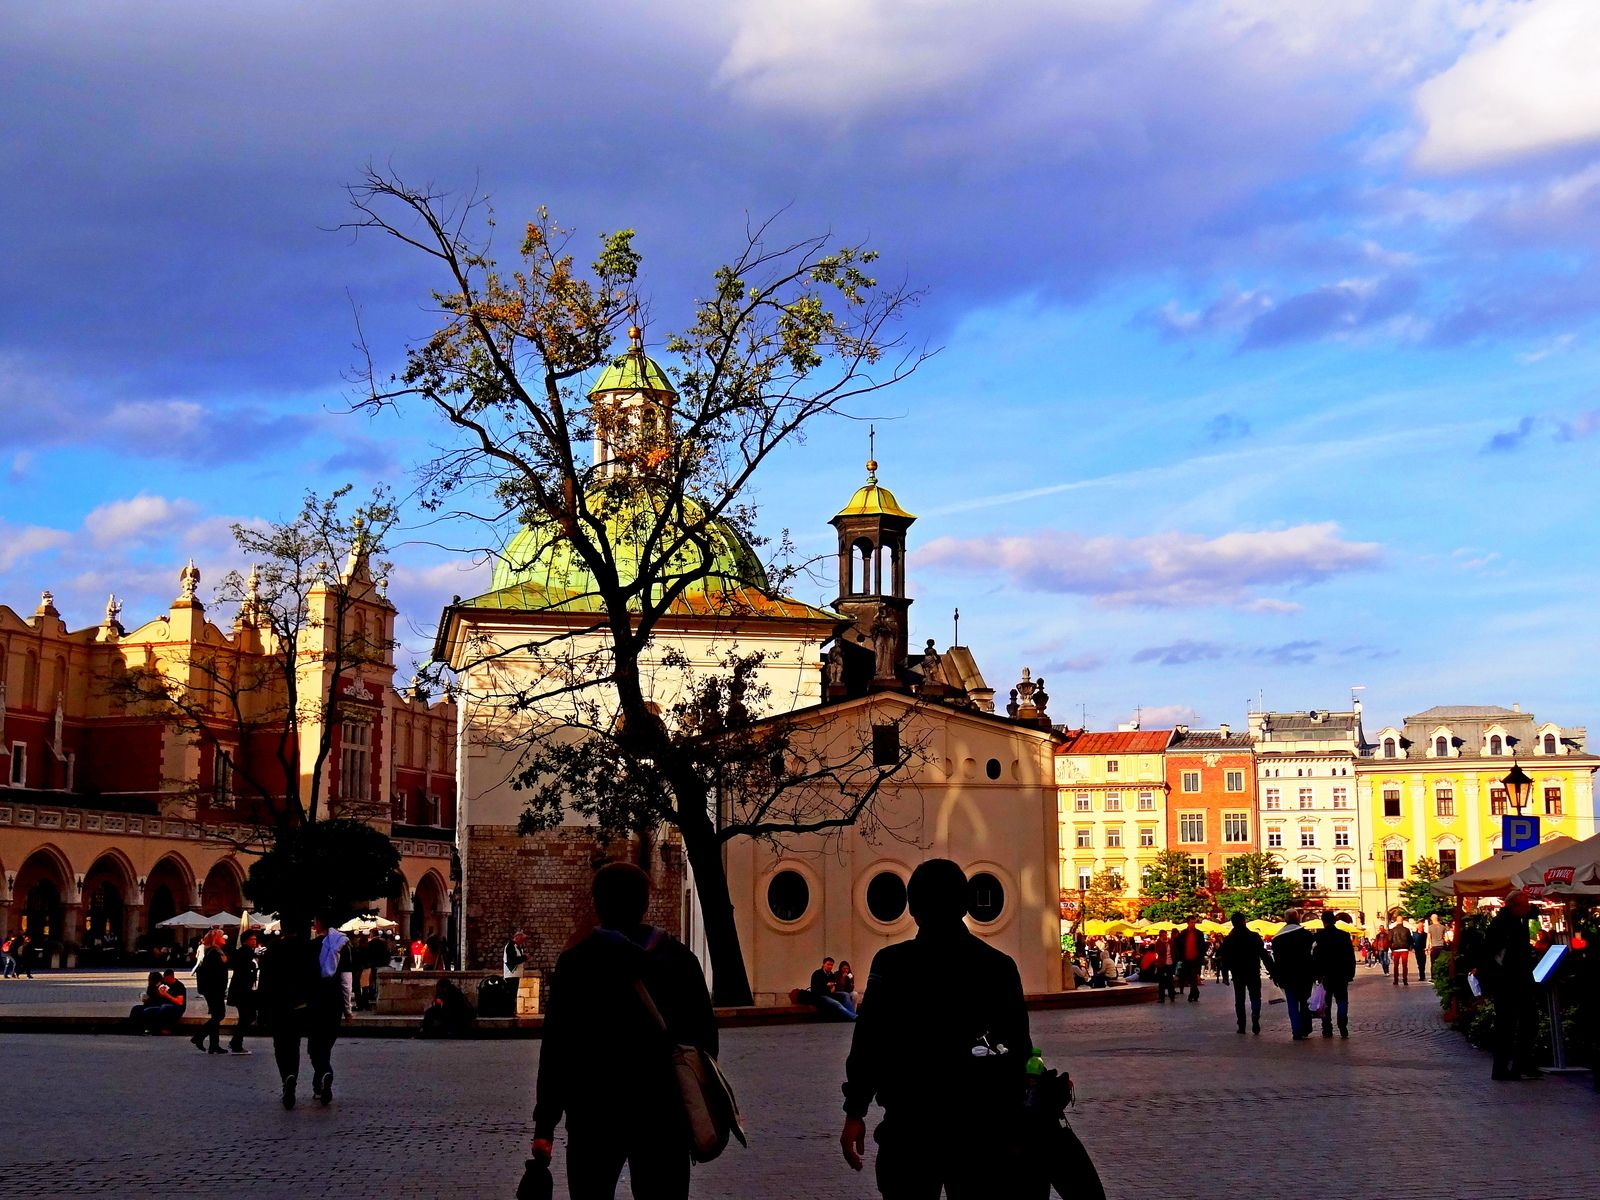 Krakow Poland - The Florence of the North - Page 39 - SkyscraperCity